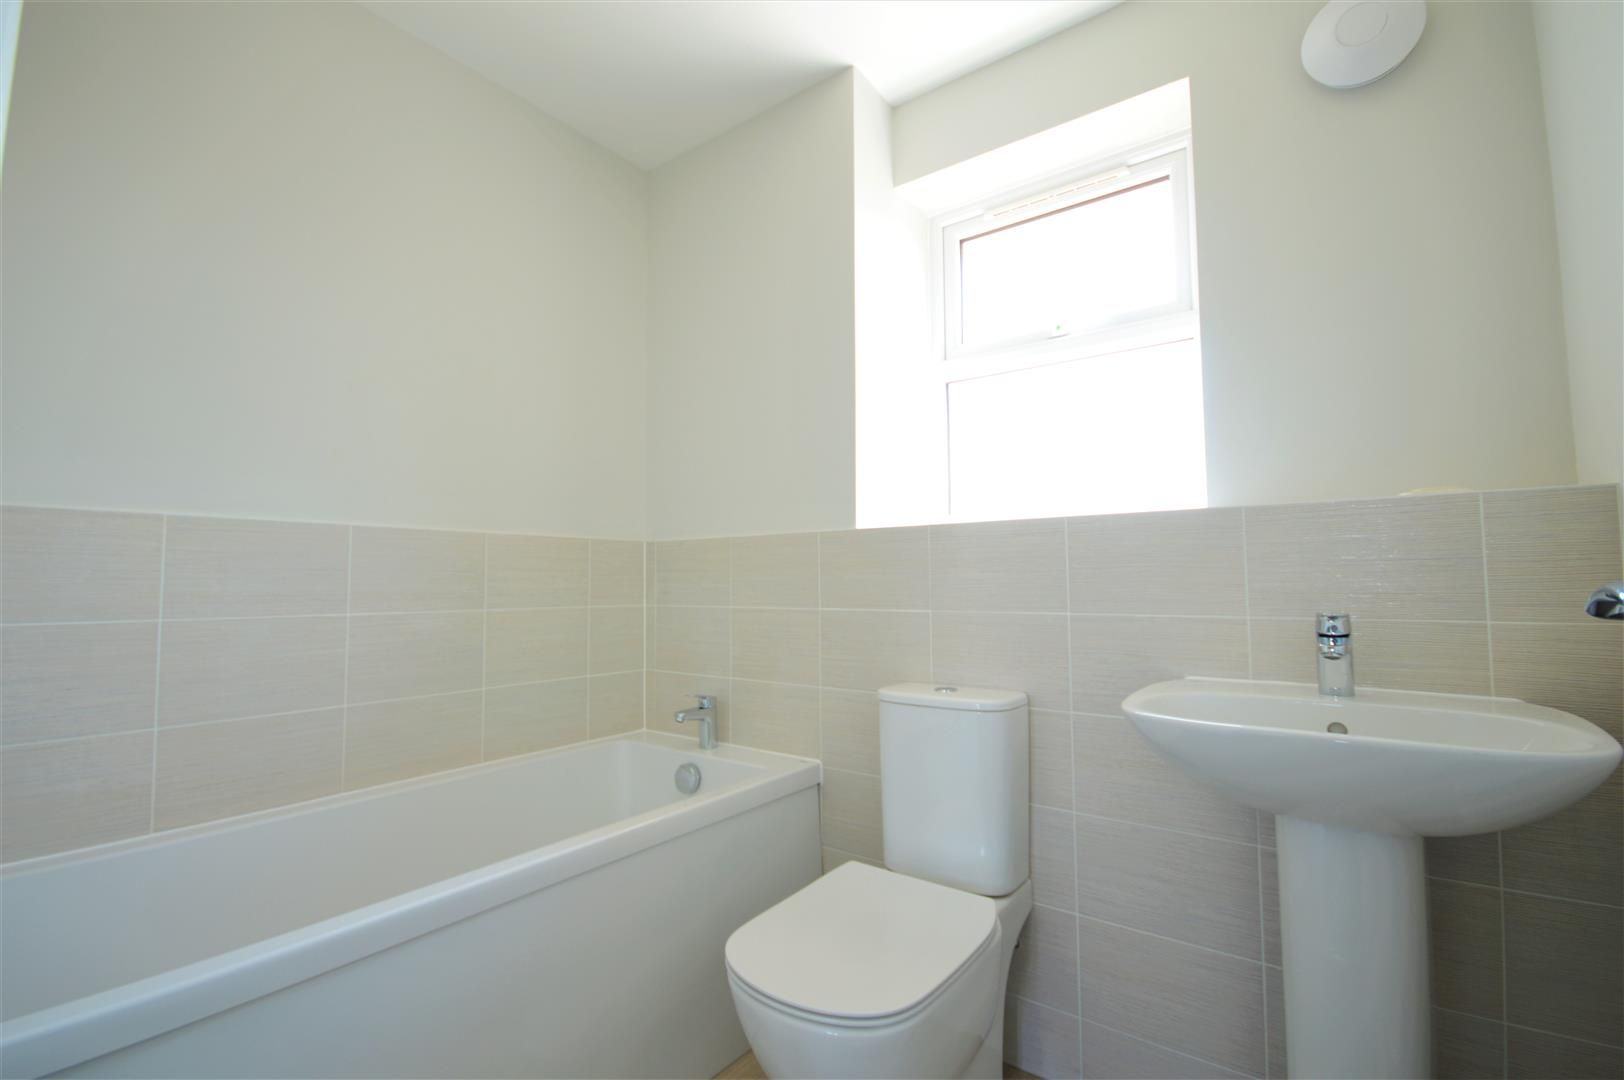 3 bed detached for sale in Kingstone 7